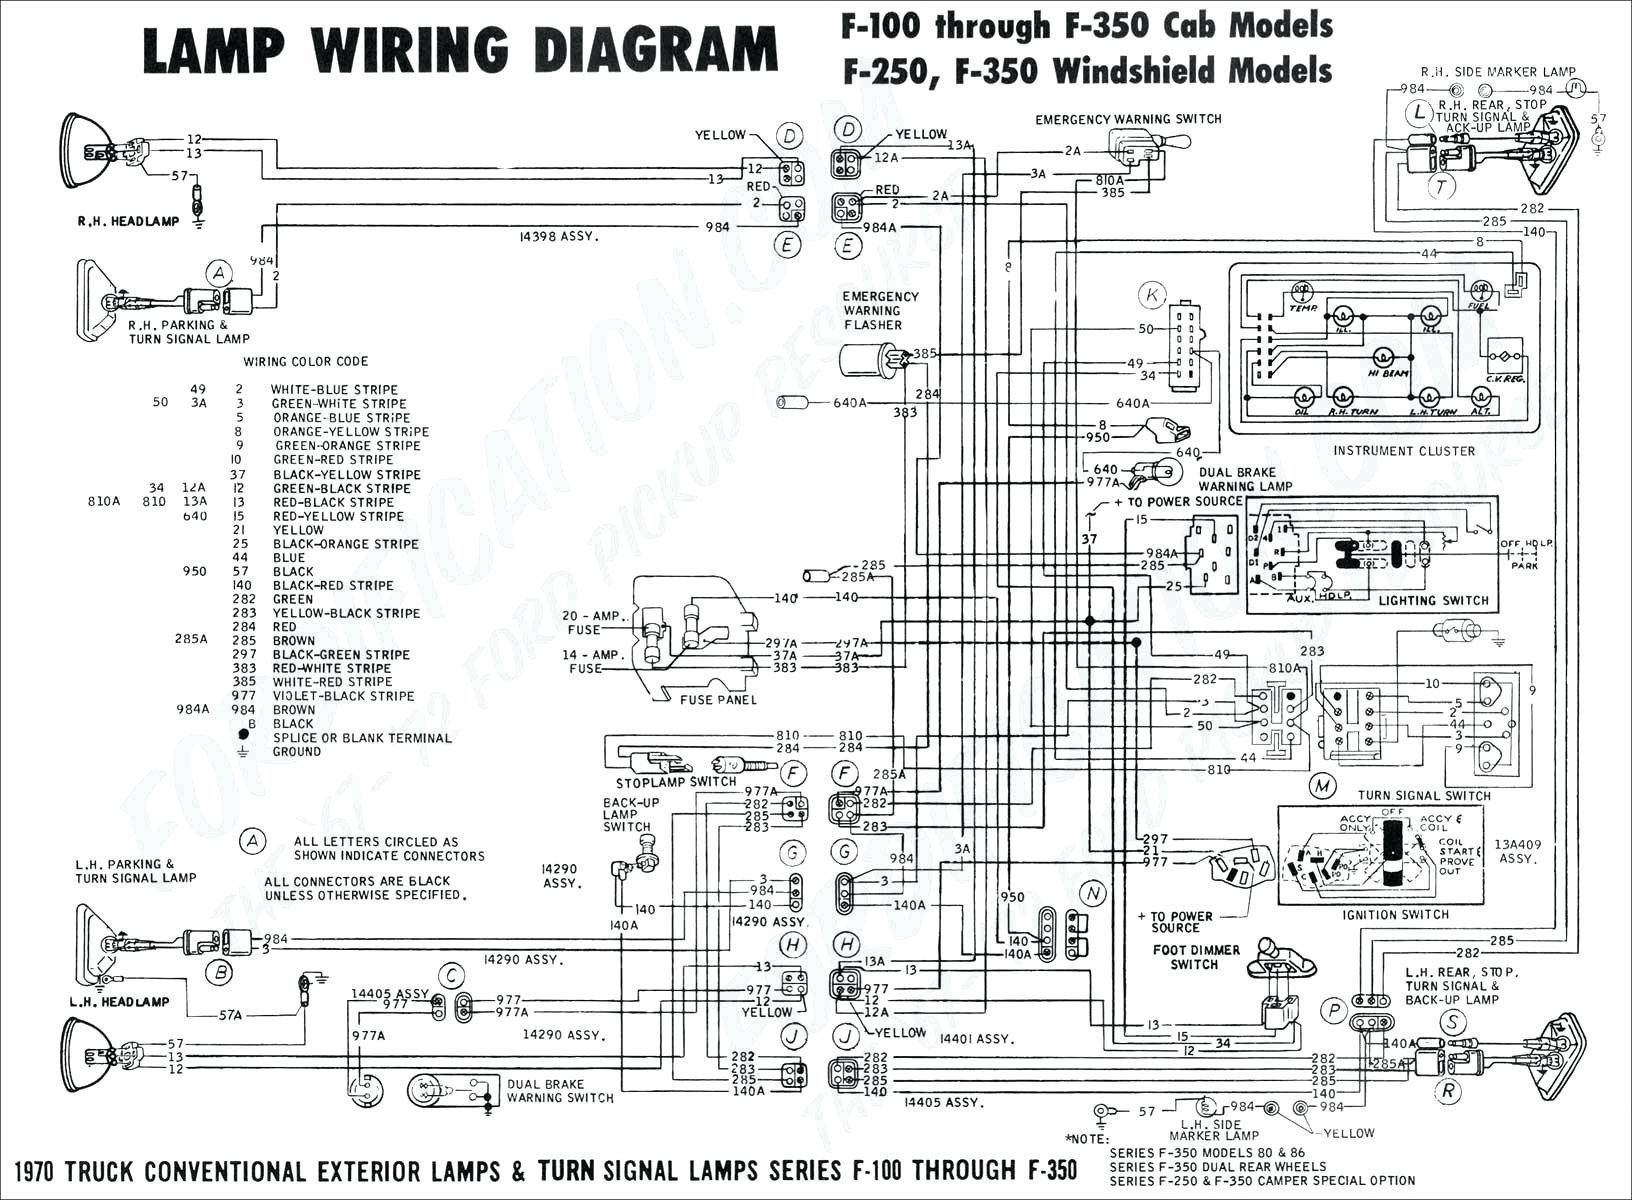 7 Pole Trailer Plug Wiring Diagram